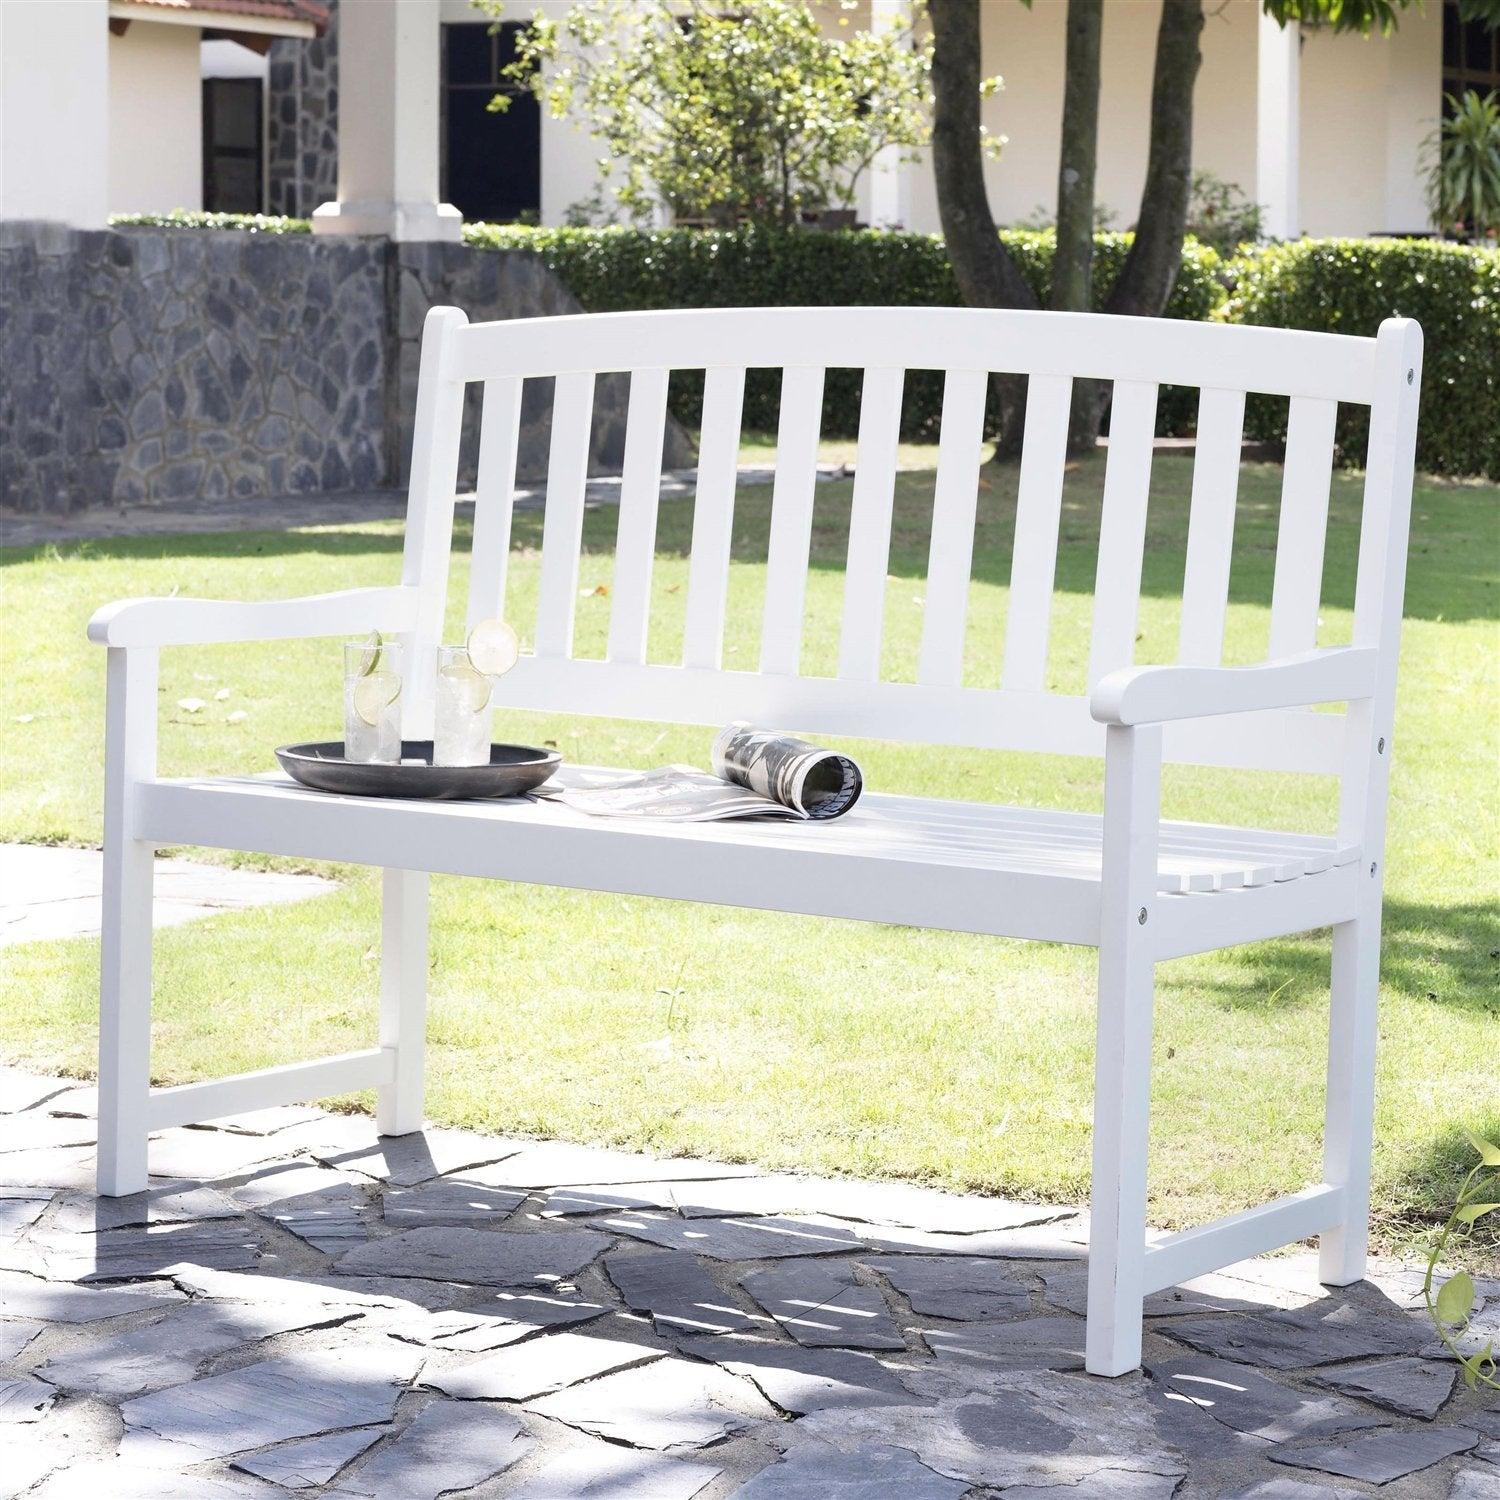 5-Ft Wood Garden Bench with Curved Slat Back and Armrests in White